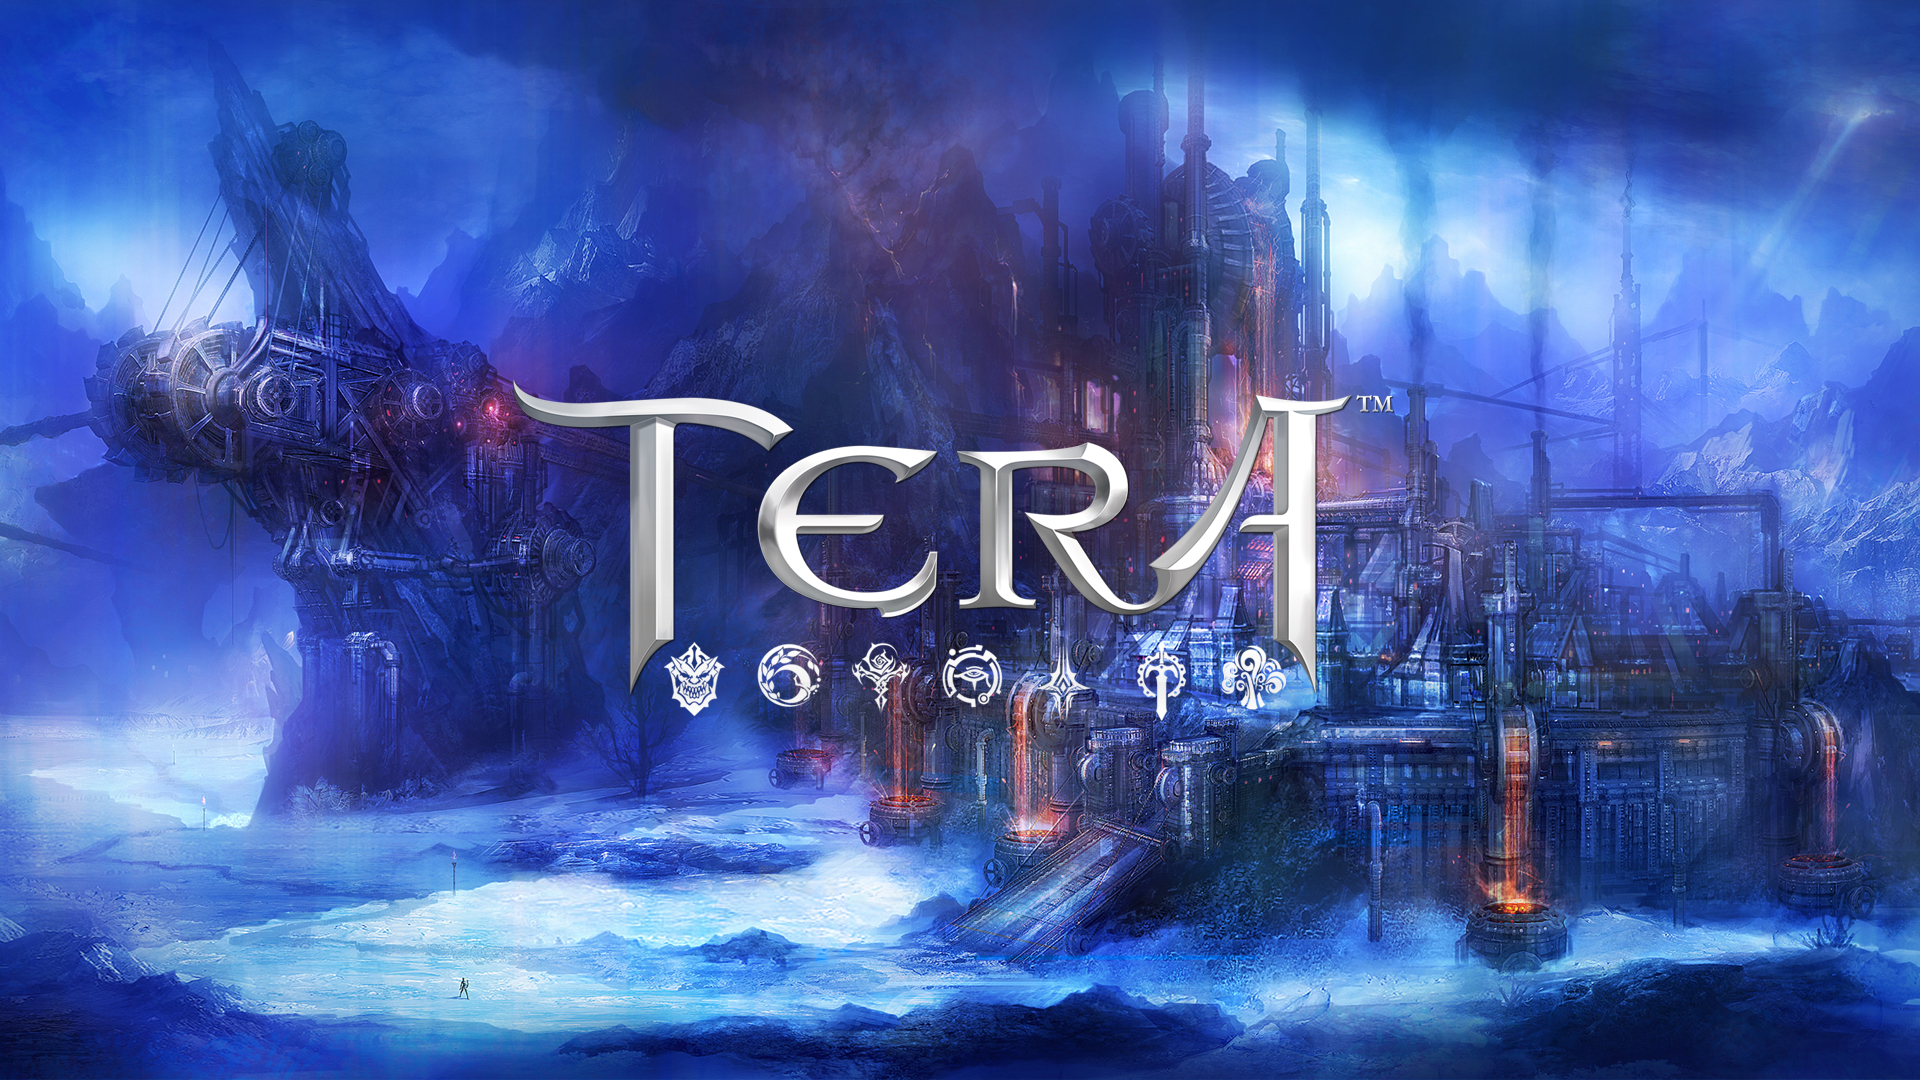 tera rising wallpaper - photo #13